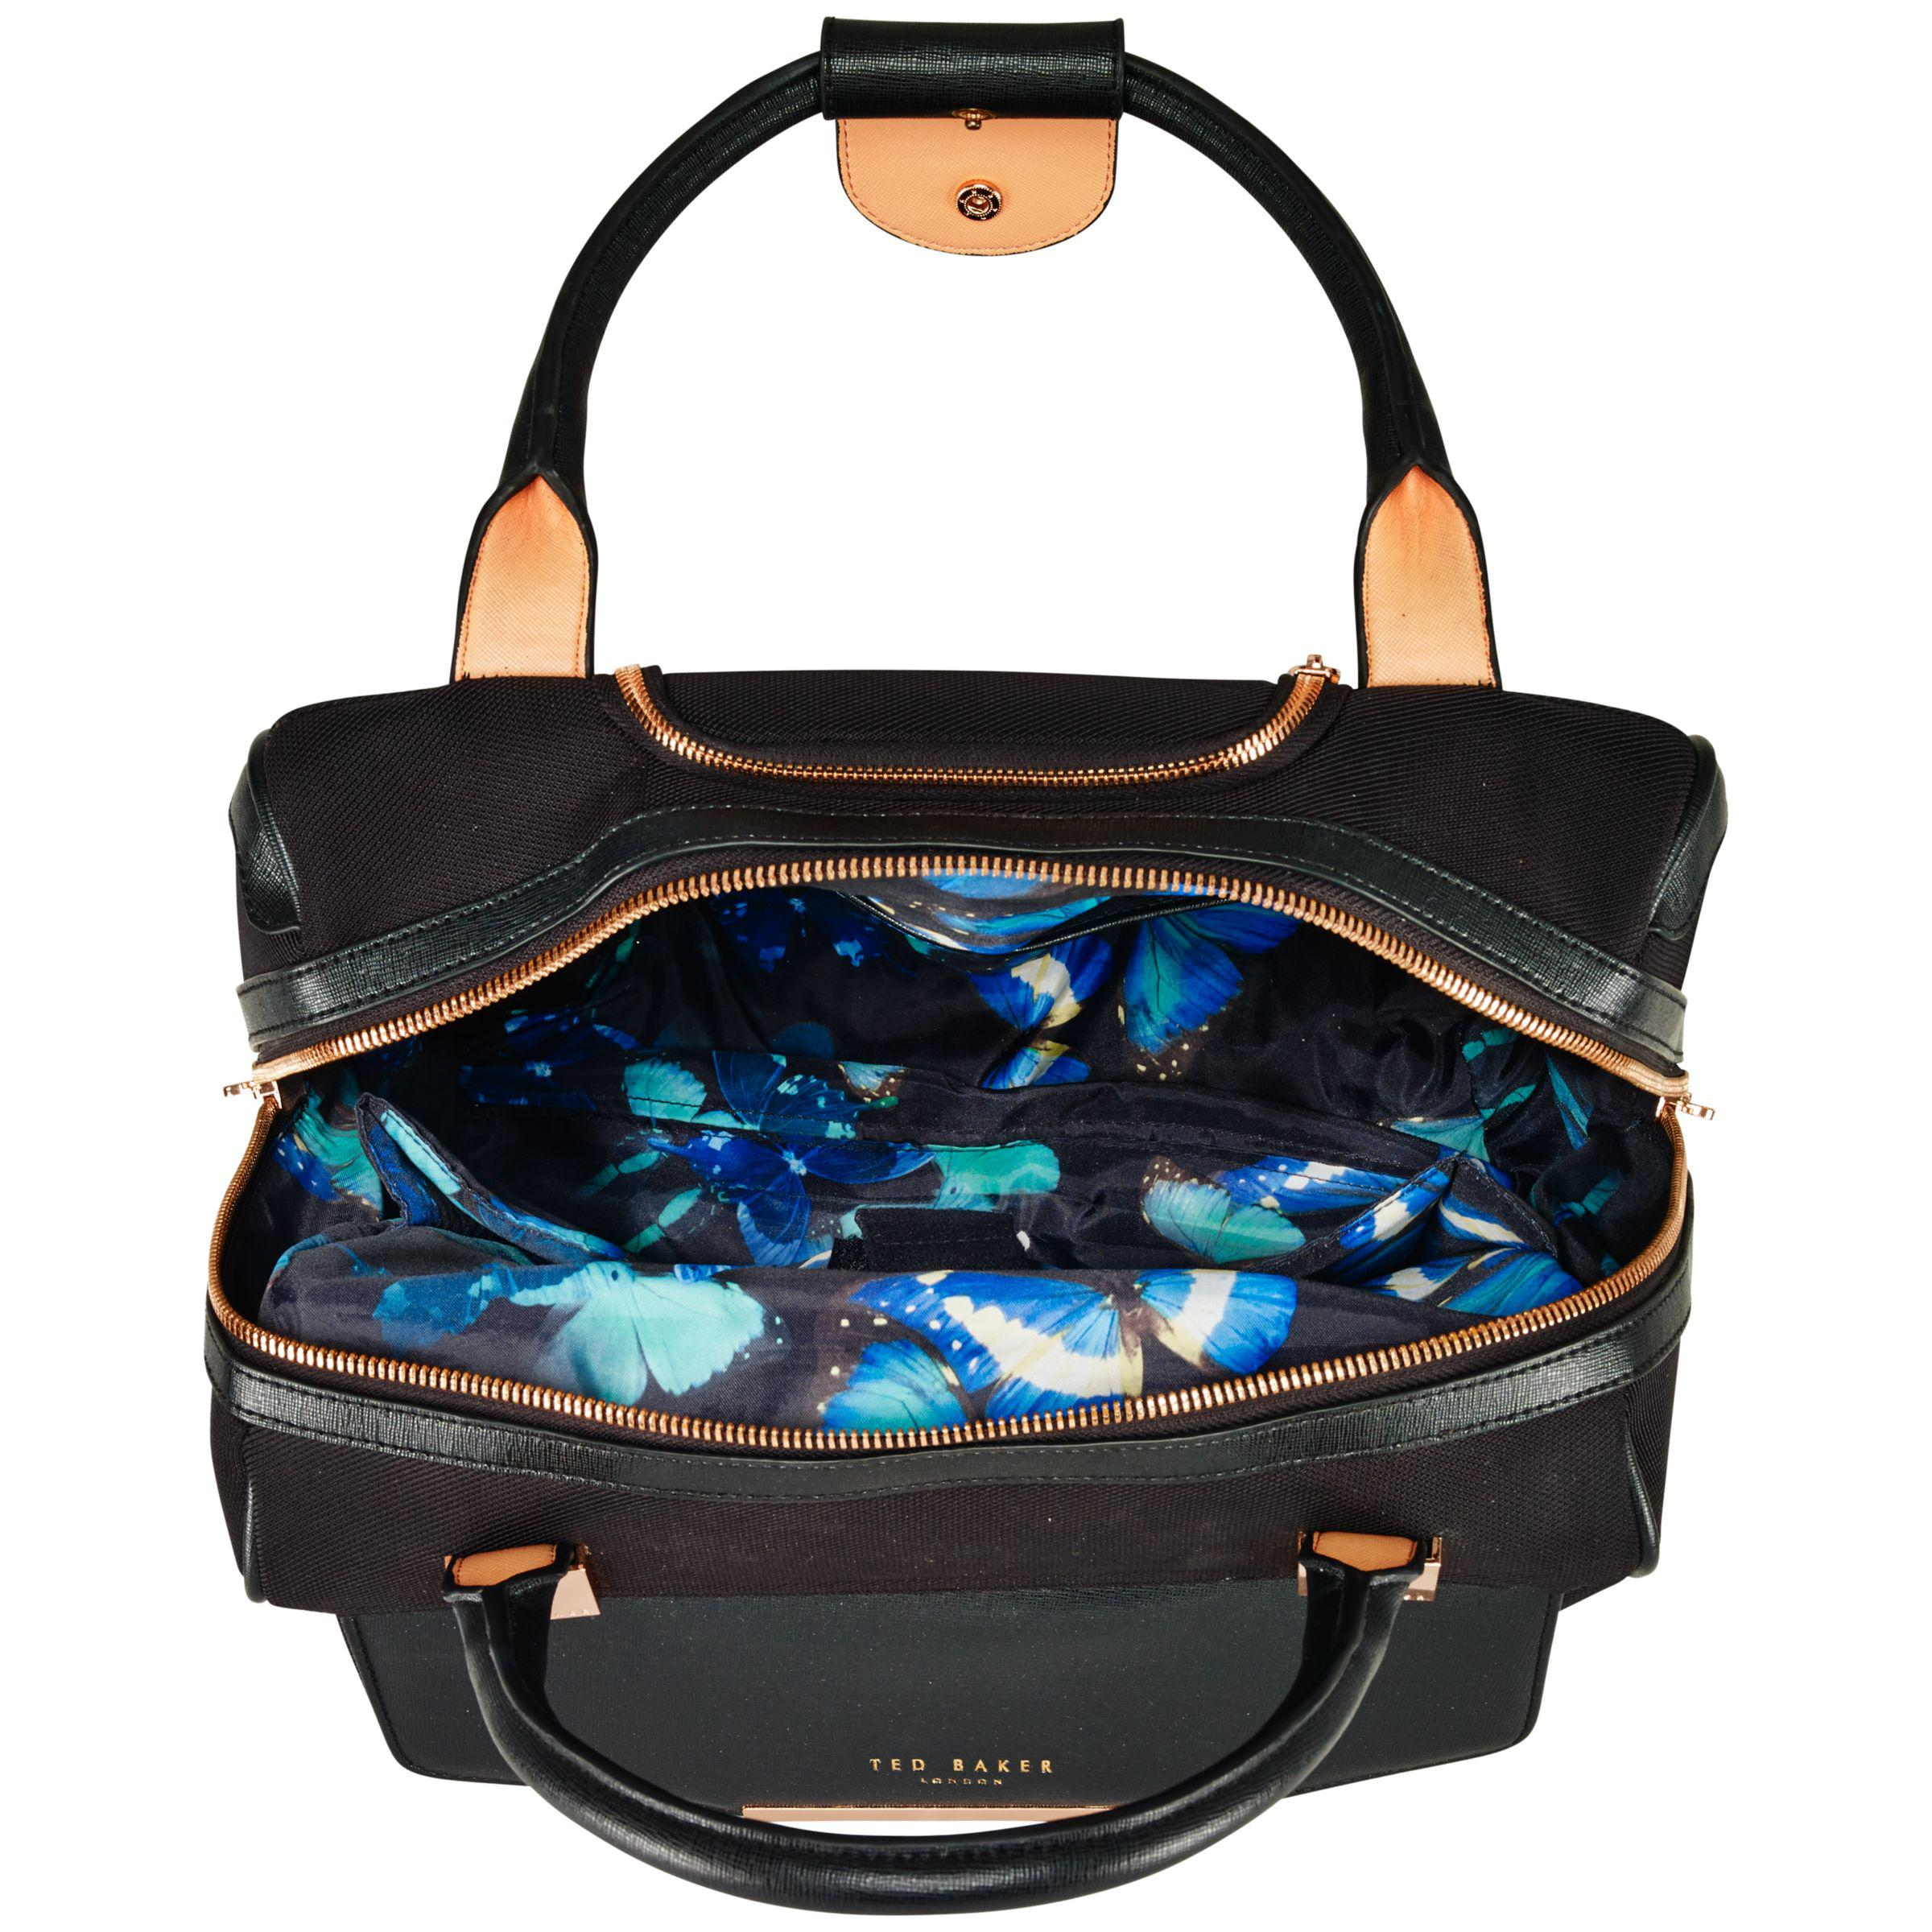 c1a2f55c96e8 Ted Baker Albany 2-wheel Business Bag in Black - Lyst